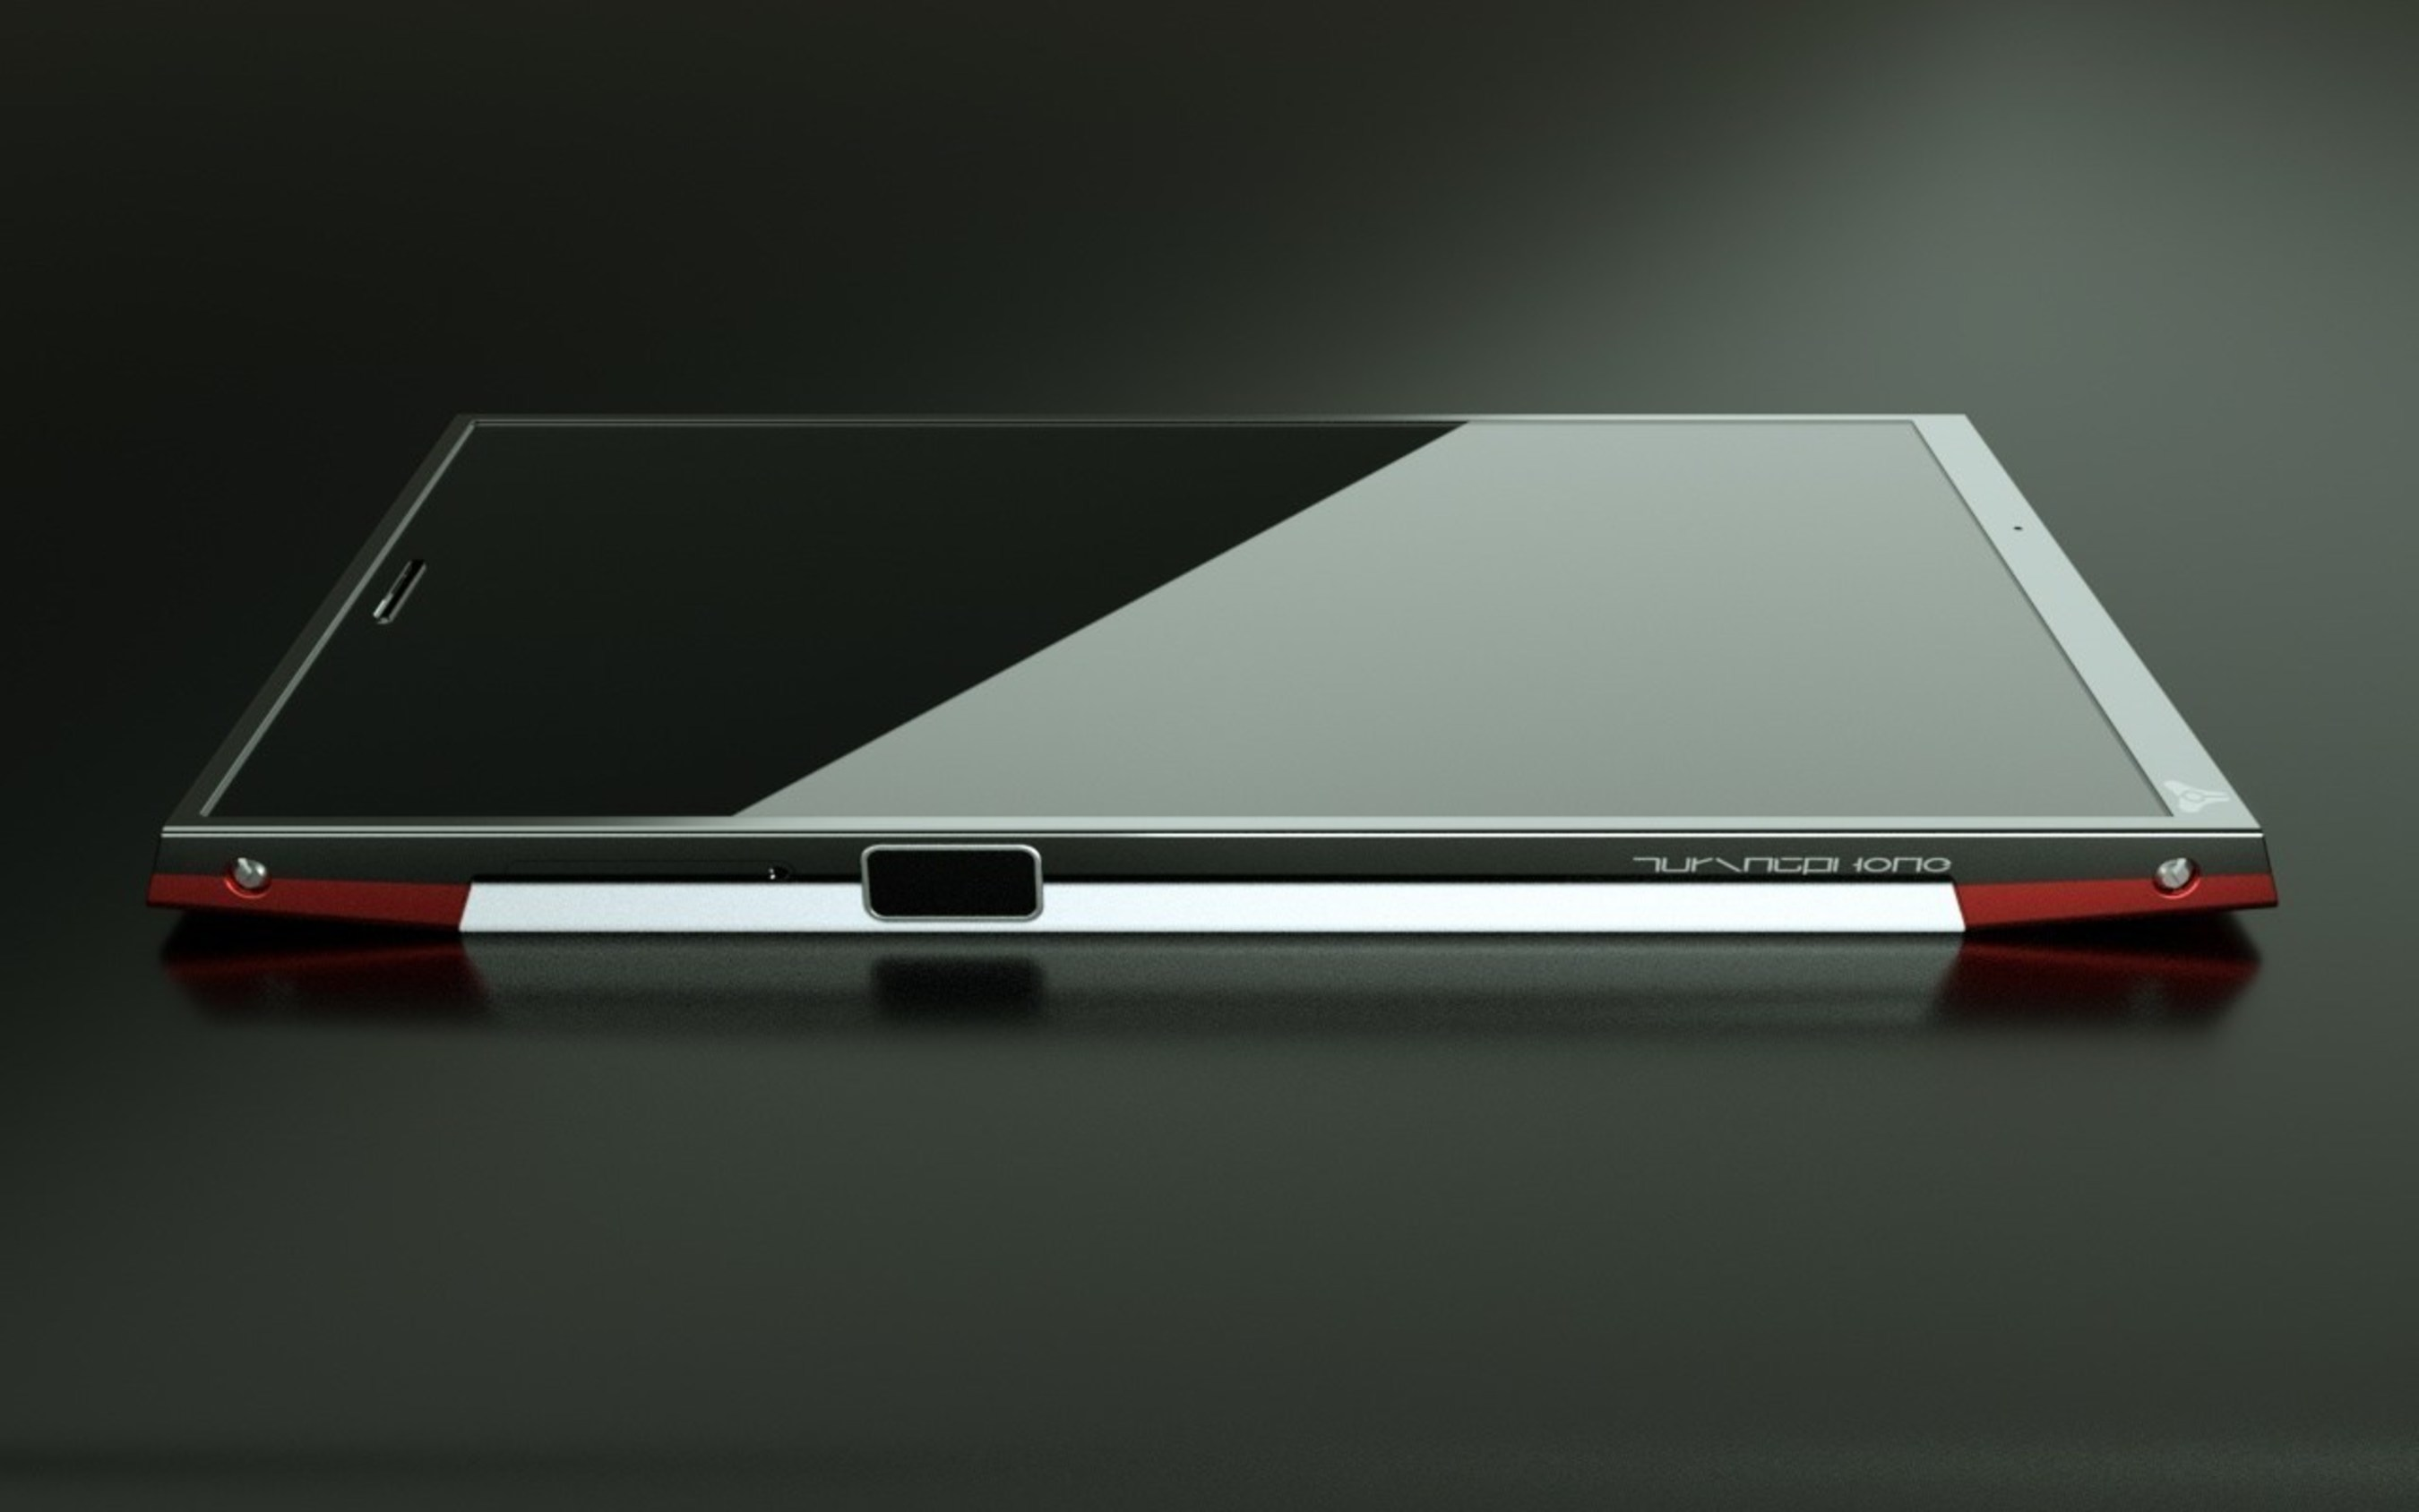 Side view of Turing Robotic Industries' Turing Phone.